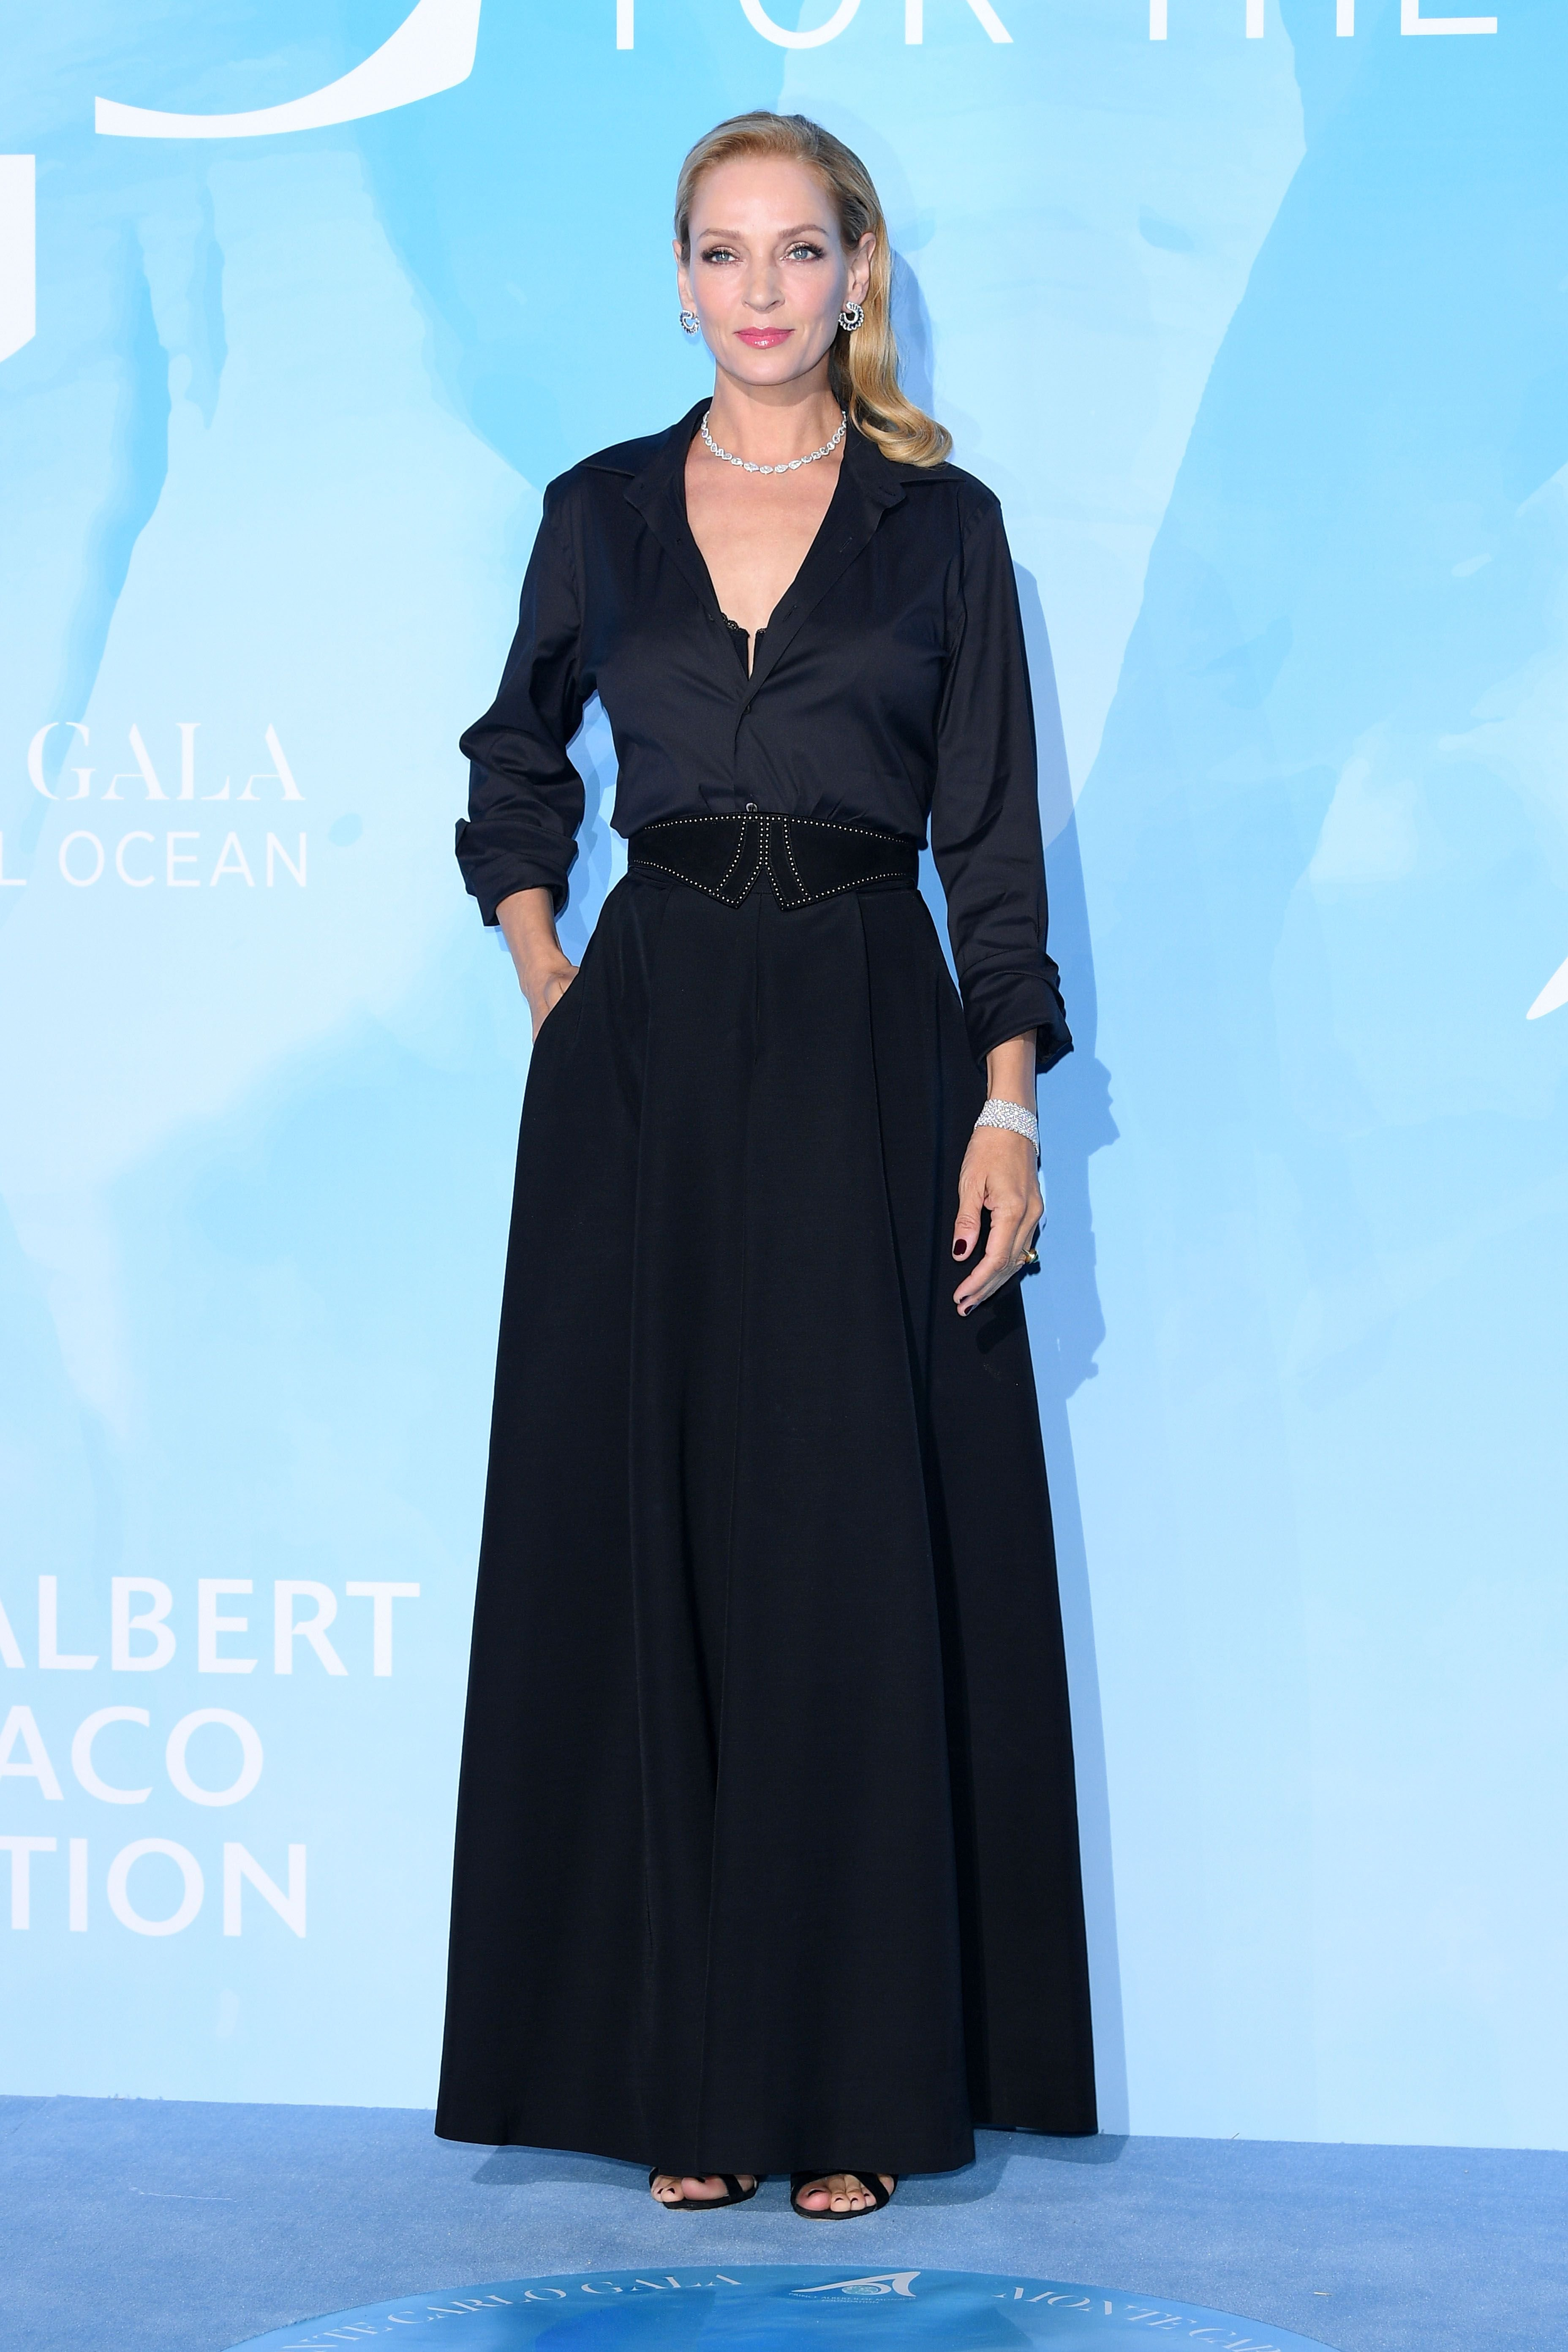 Uma Thurman attends the Gala for the Global Ocean.   Source: Getty Images